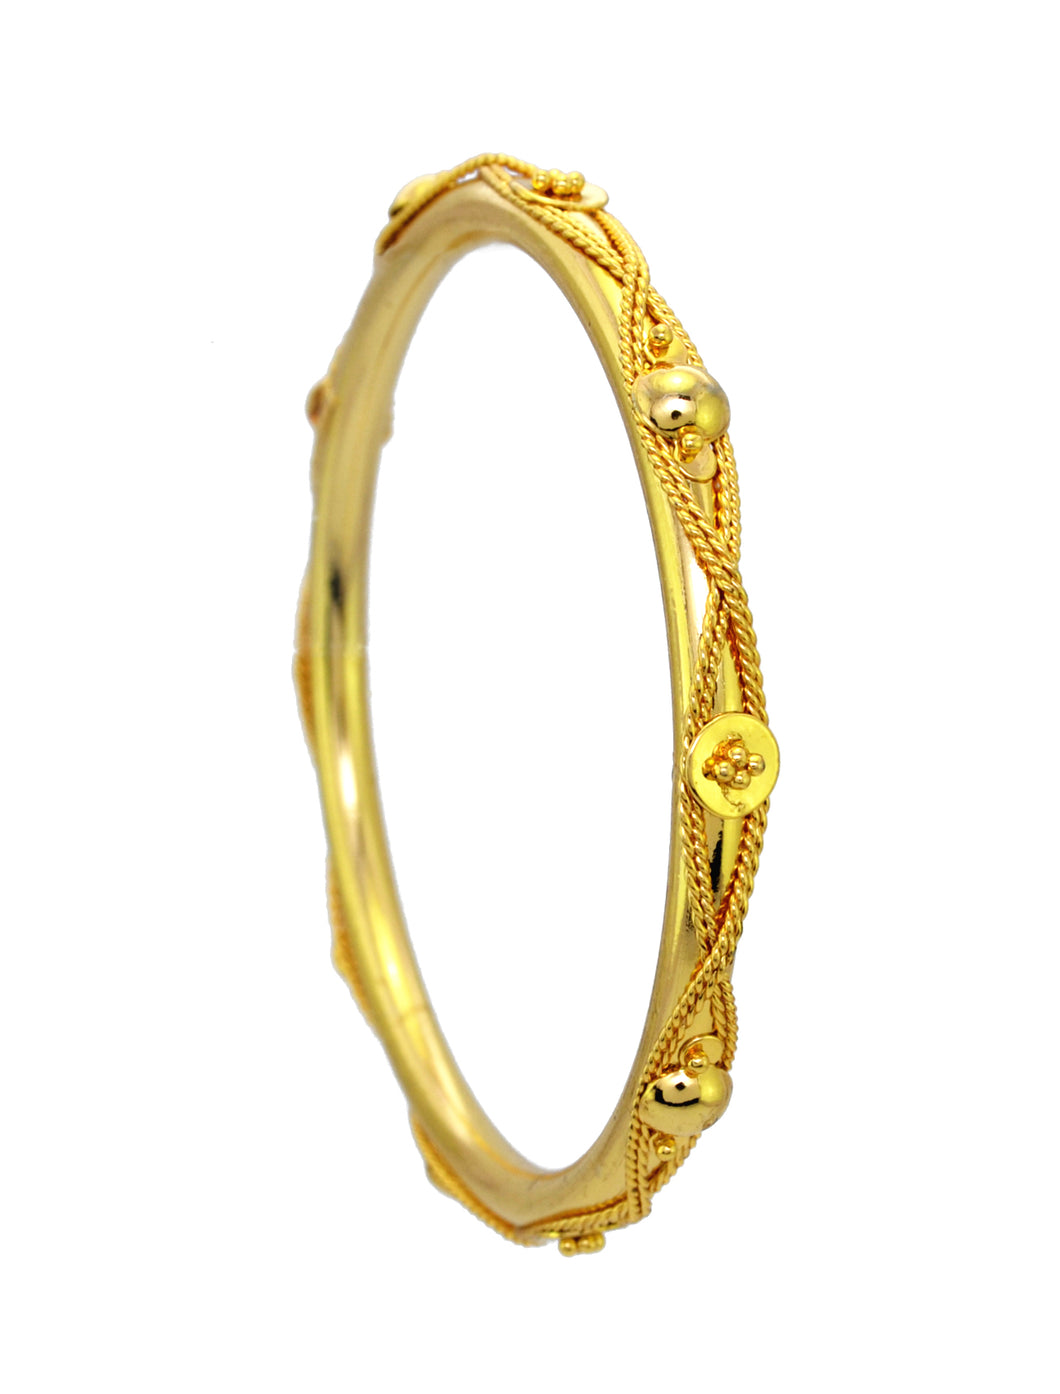 Beautiful Traditonal gold plated bangle - Bangle by Shrayathi